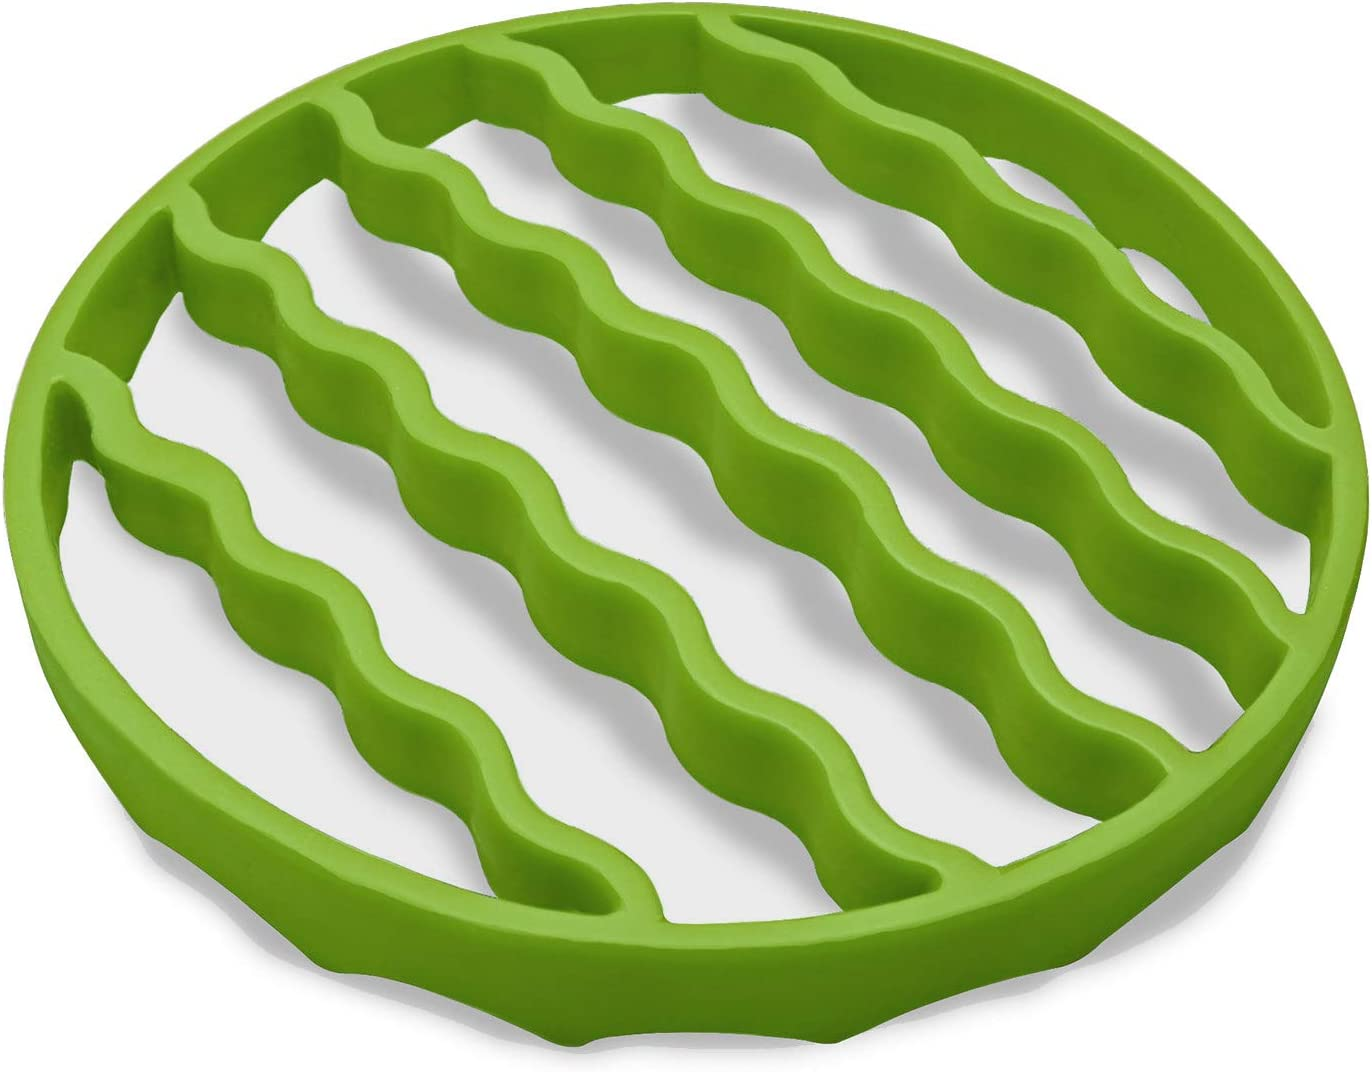 Steamer Roaster Rack, Silicone Roasting Rack for Baking Canning Cooking Steaming, Pressure Cooker Rack Accessories Compatible with 6-quart 8-quart cookers (Round, Green)